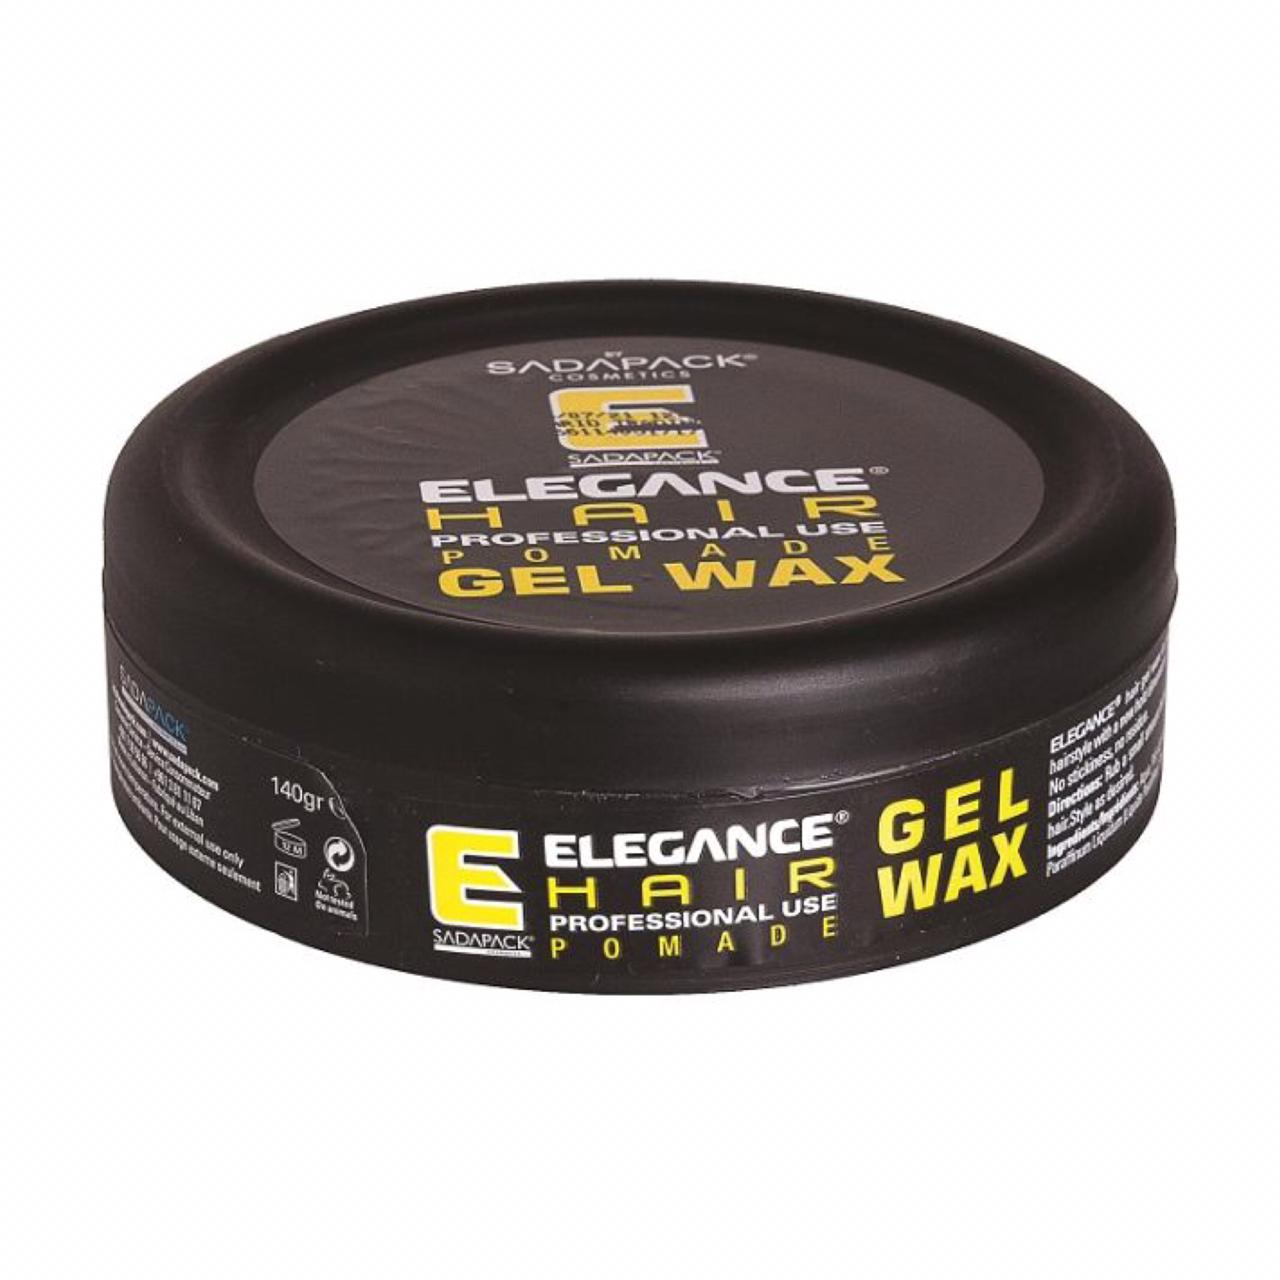 Hair wax, Gel wax, Hair pomade, Hair styling